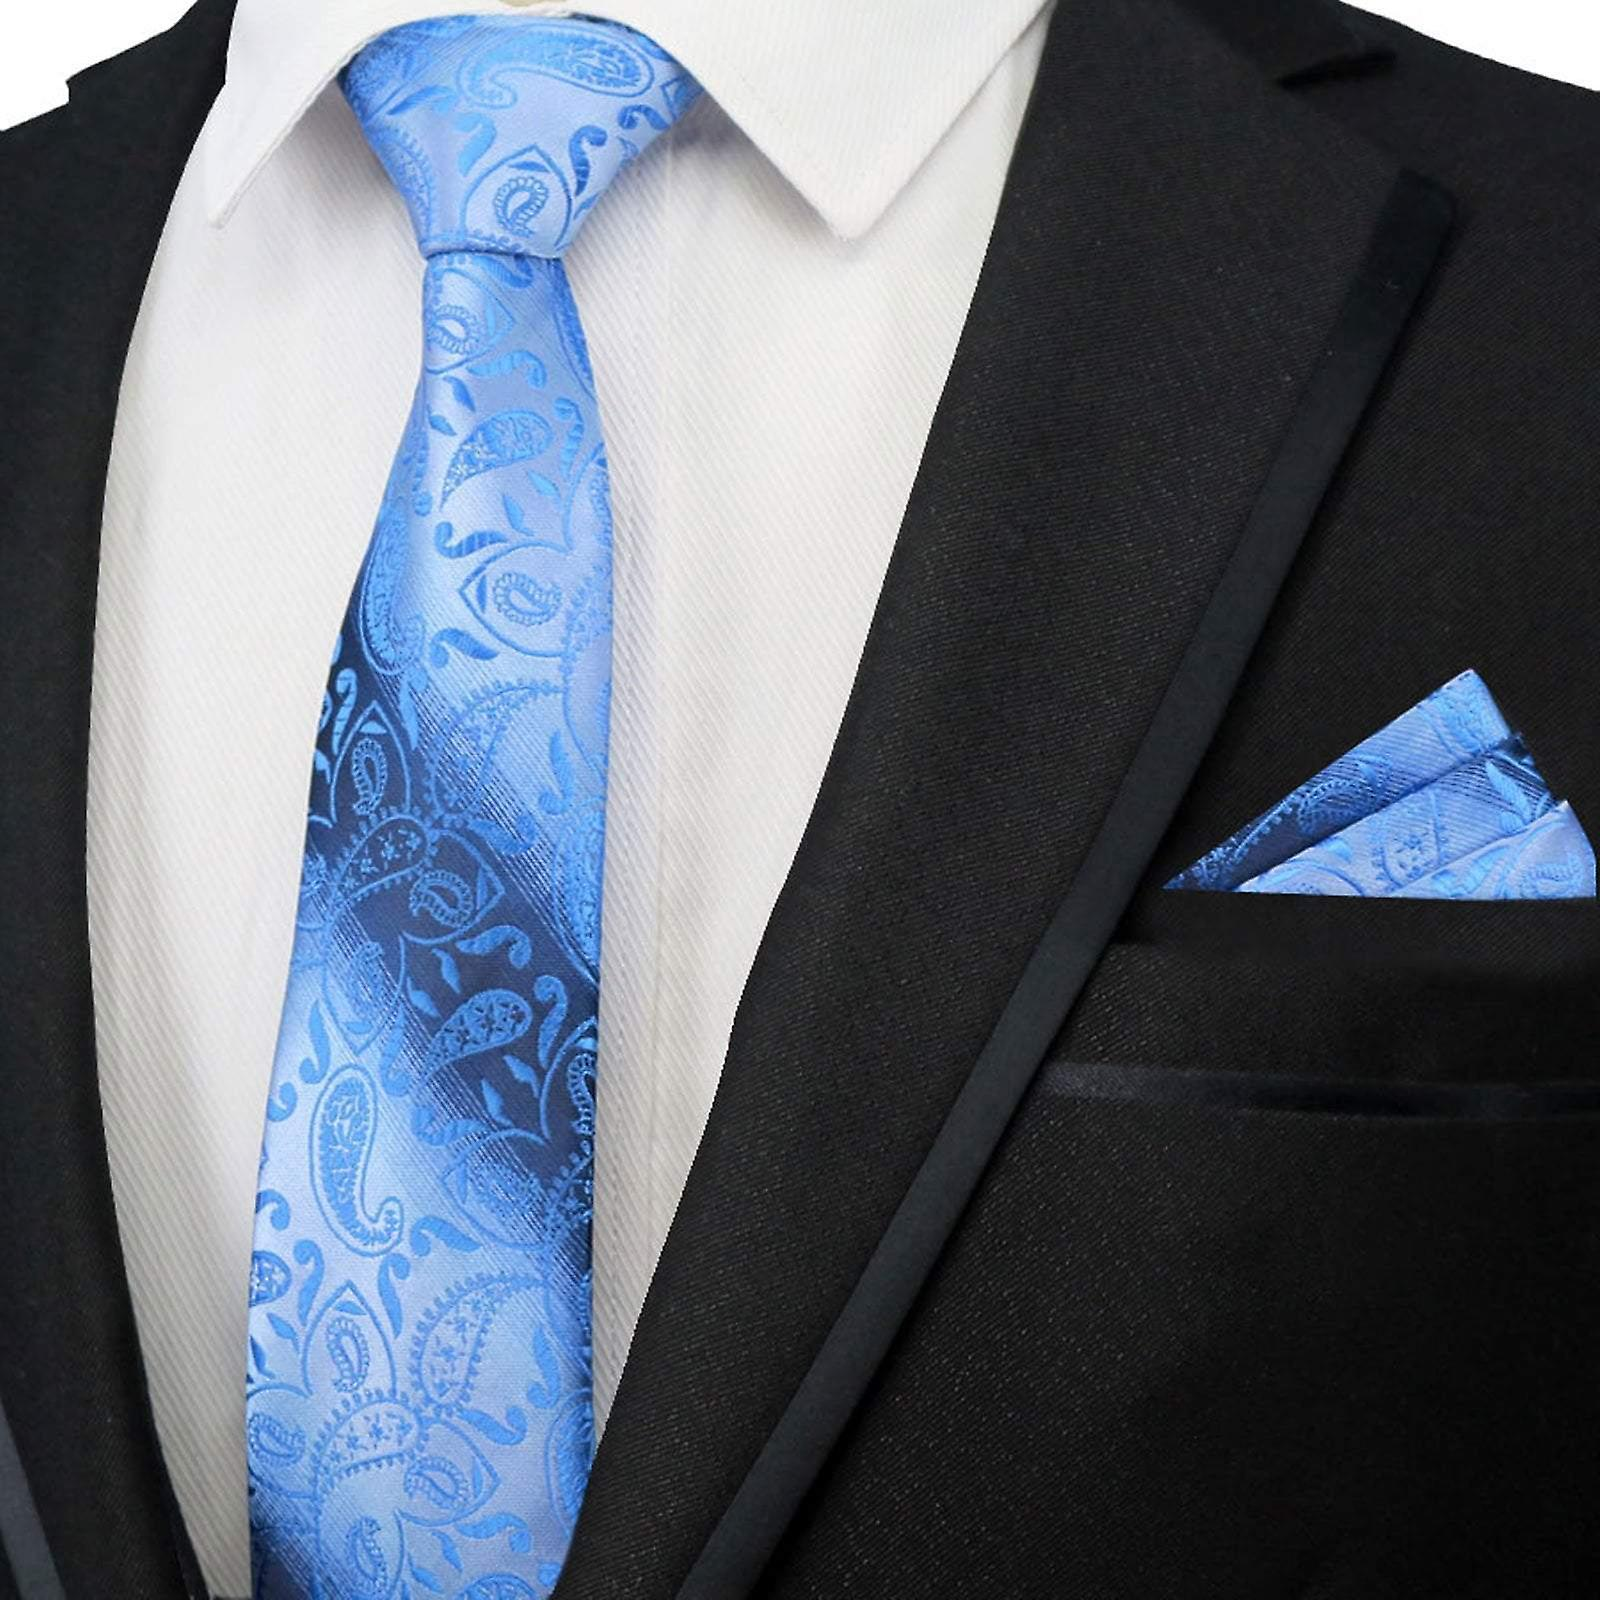 Light & dark blue paisley pattern tie & pocket square